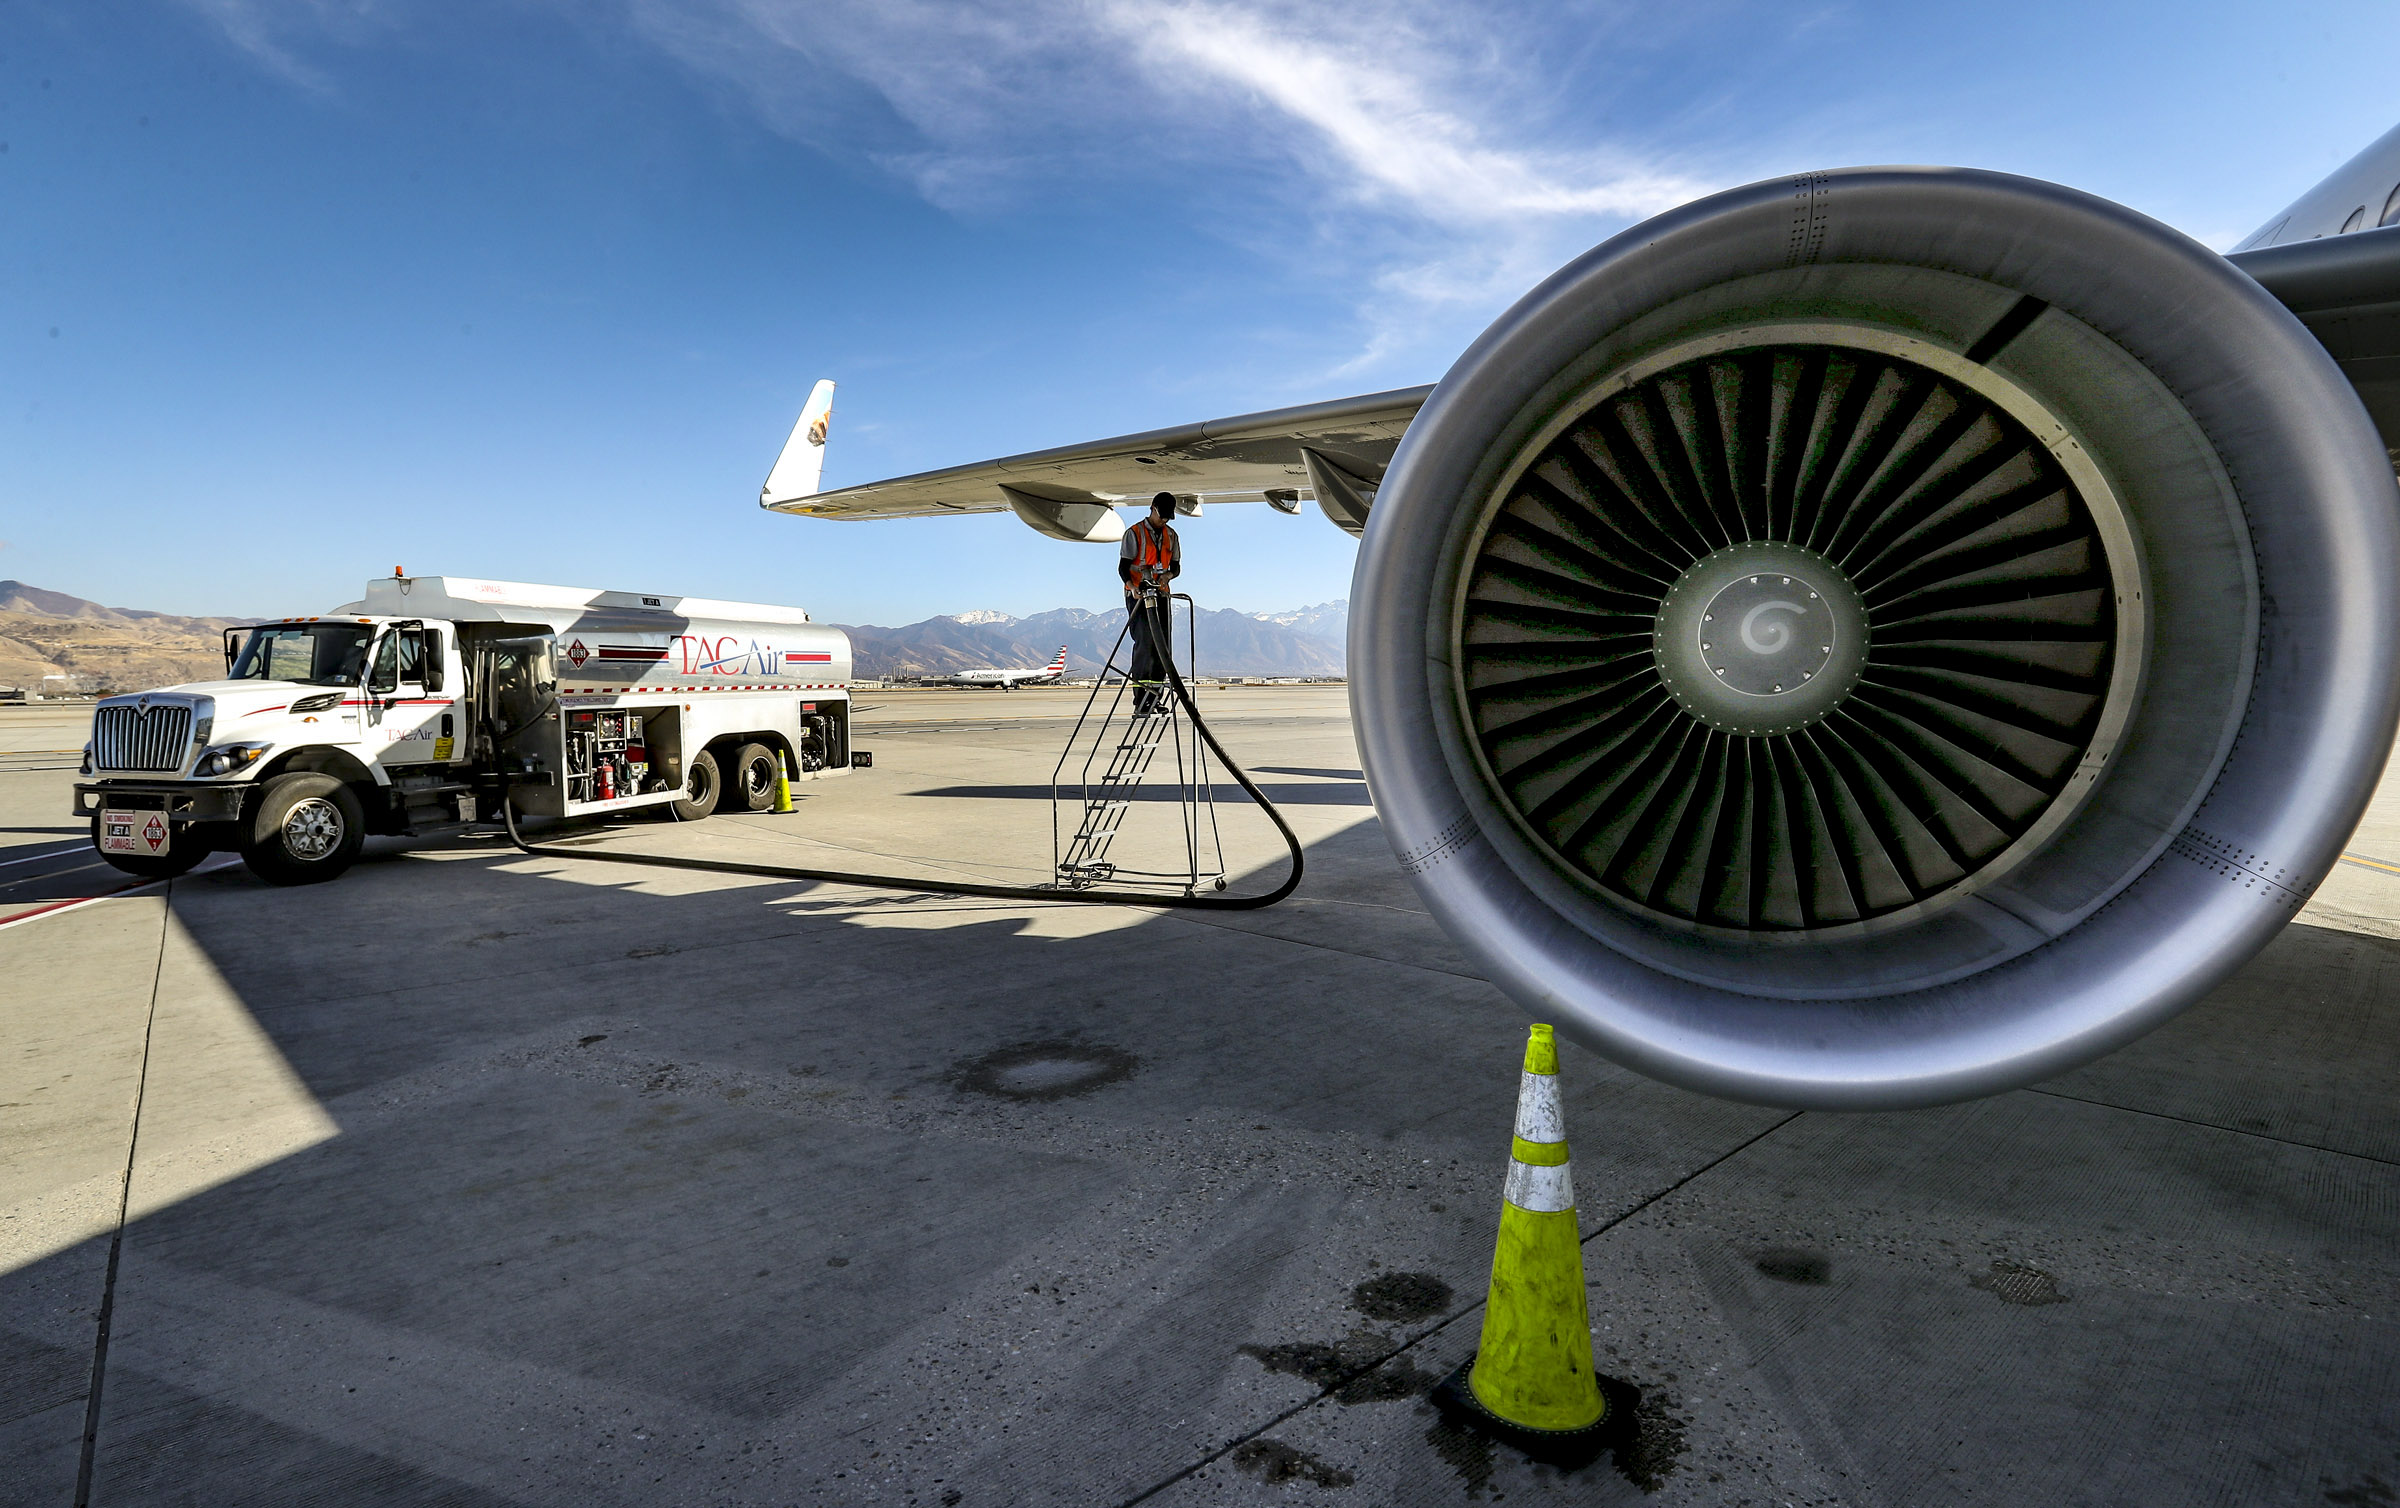 Aircraft technician Kevin Hines disconnects a fuel line from a Frontier passenger jet after refueling it from a tanker truck at the Salt Lake City International Airport on Monday, Nov. 11, 2019.